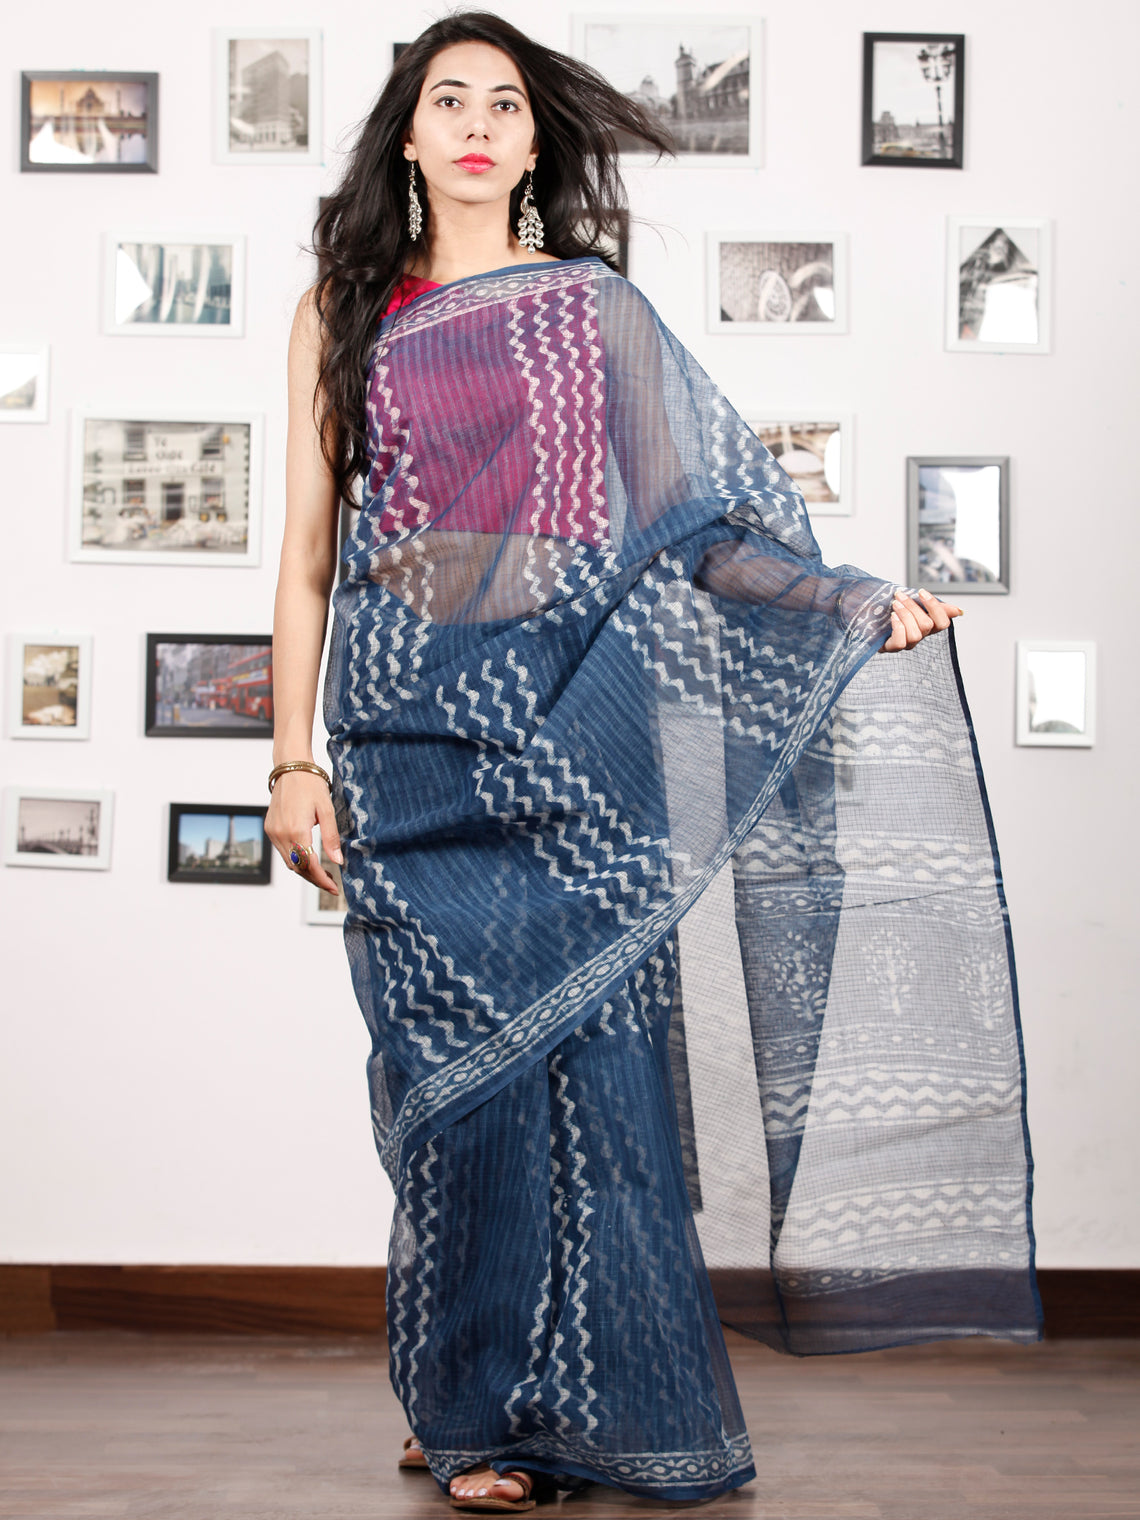 Indigo Ivory Hand Block Printed Kota Doria Saree in Natural Colors - S031702883